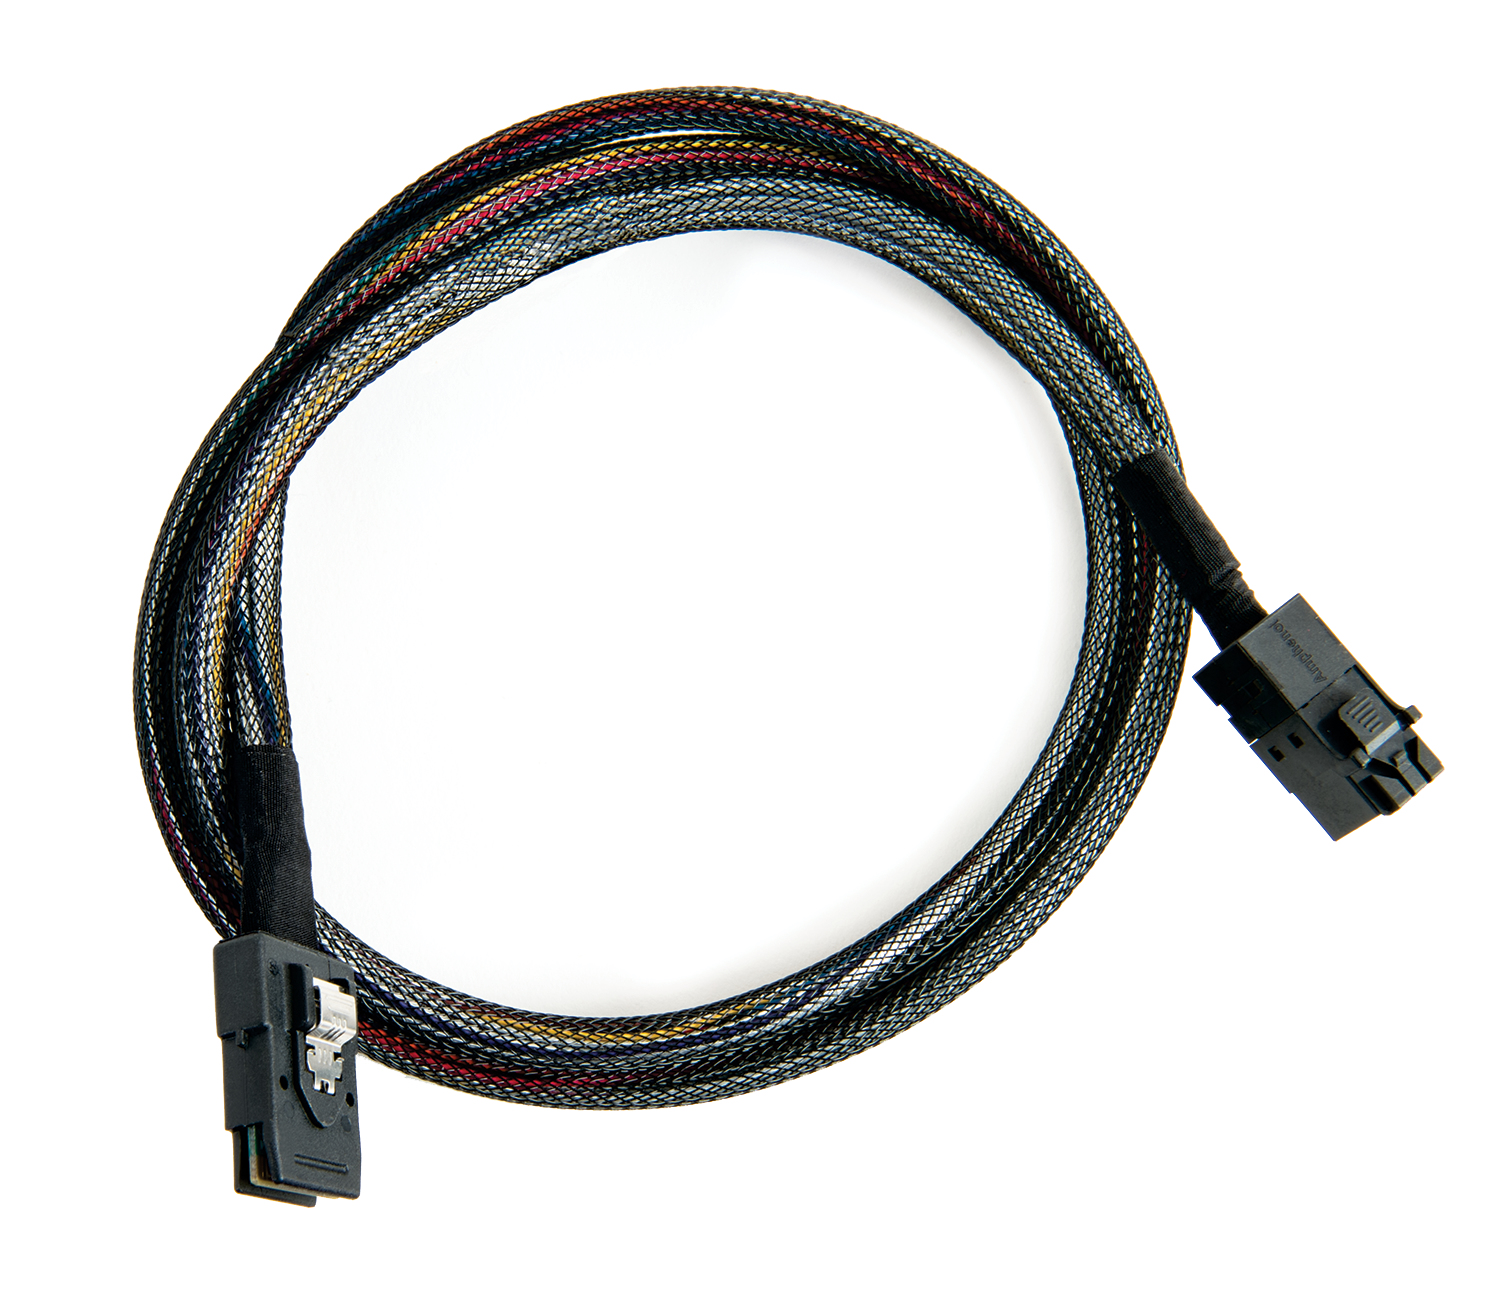 Internal Mini SAS HD x4 (SFF-8643) to SCSI x4, ACK-I-HDmSAS-mSAS-1M Cable/ 0.5m